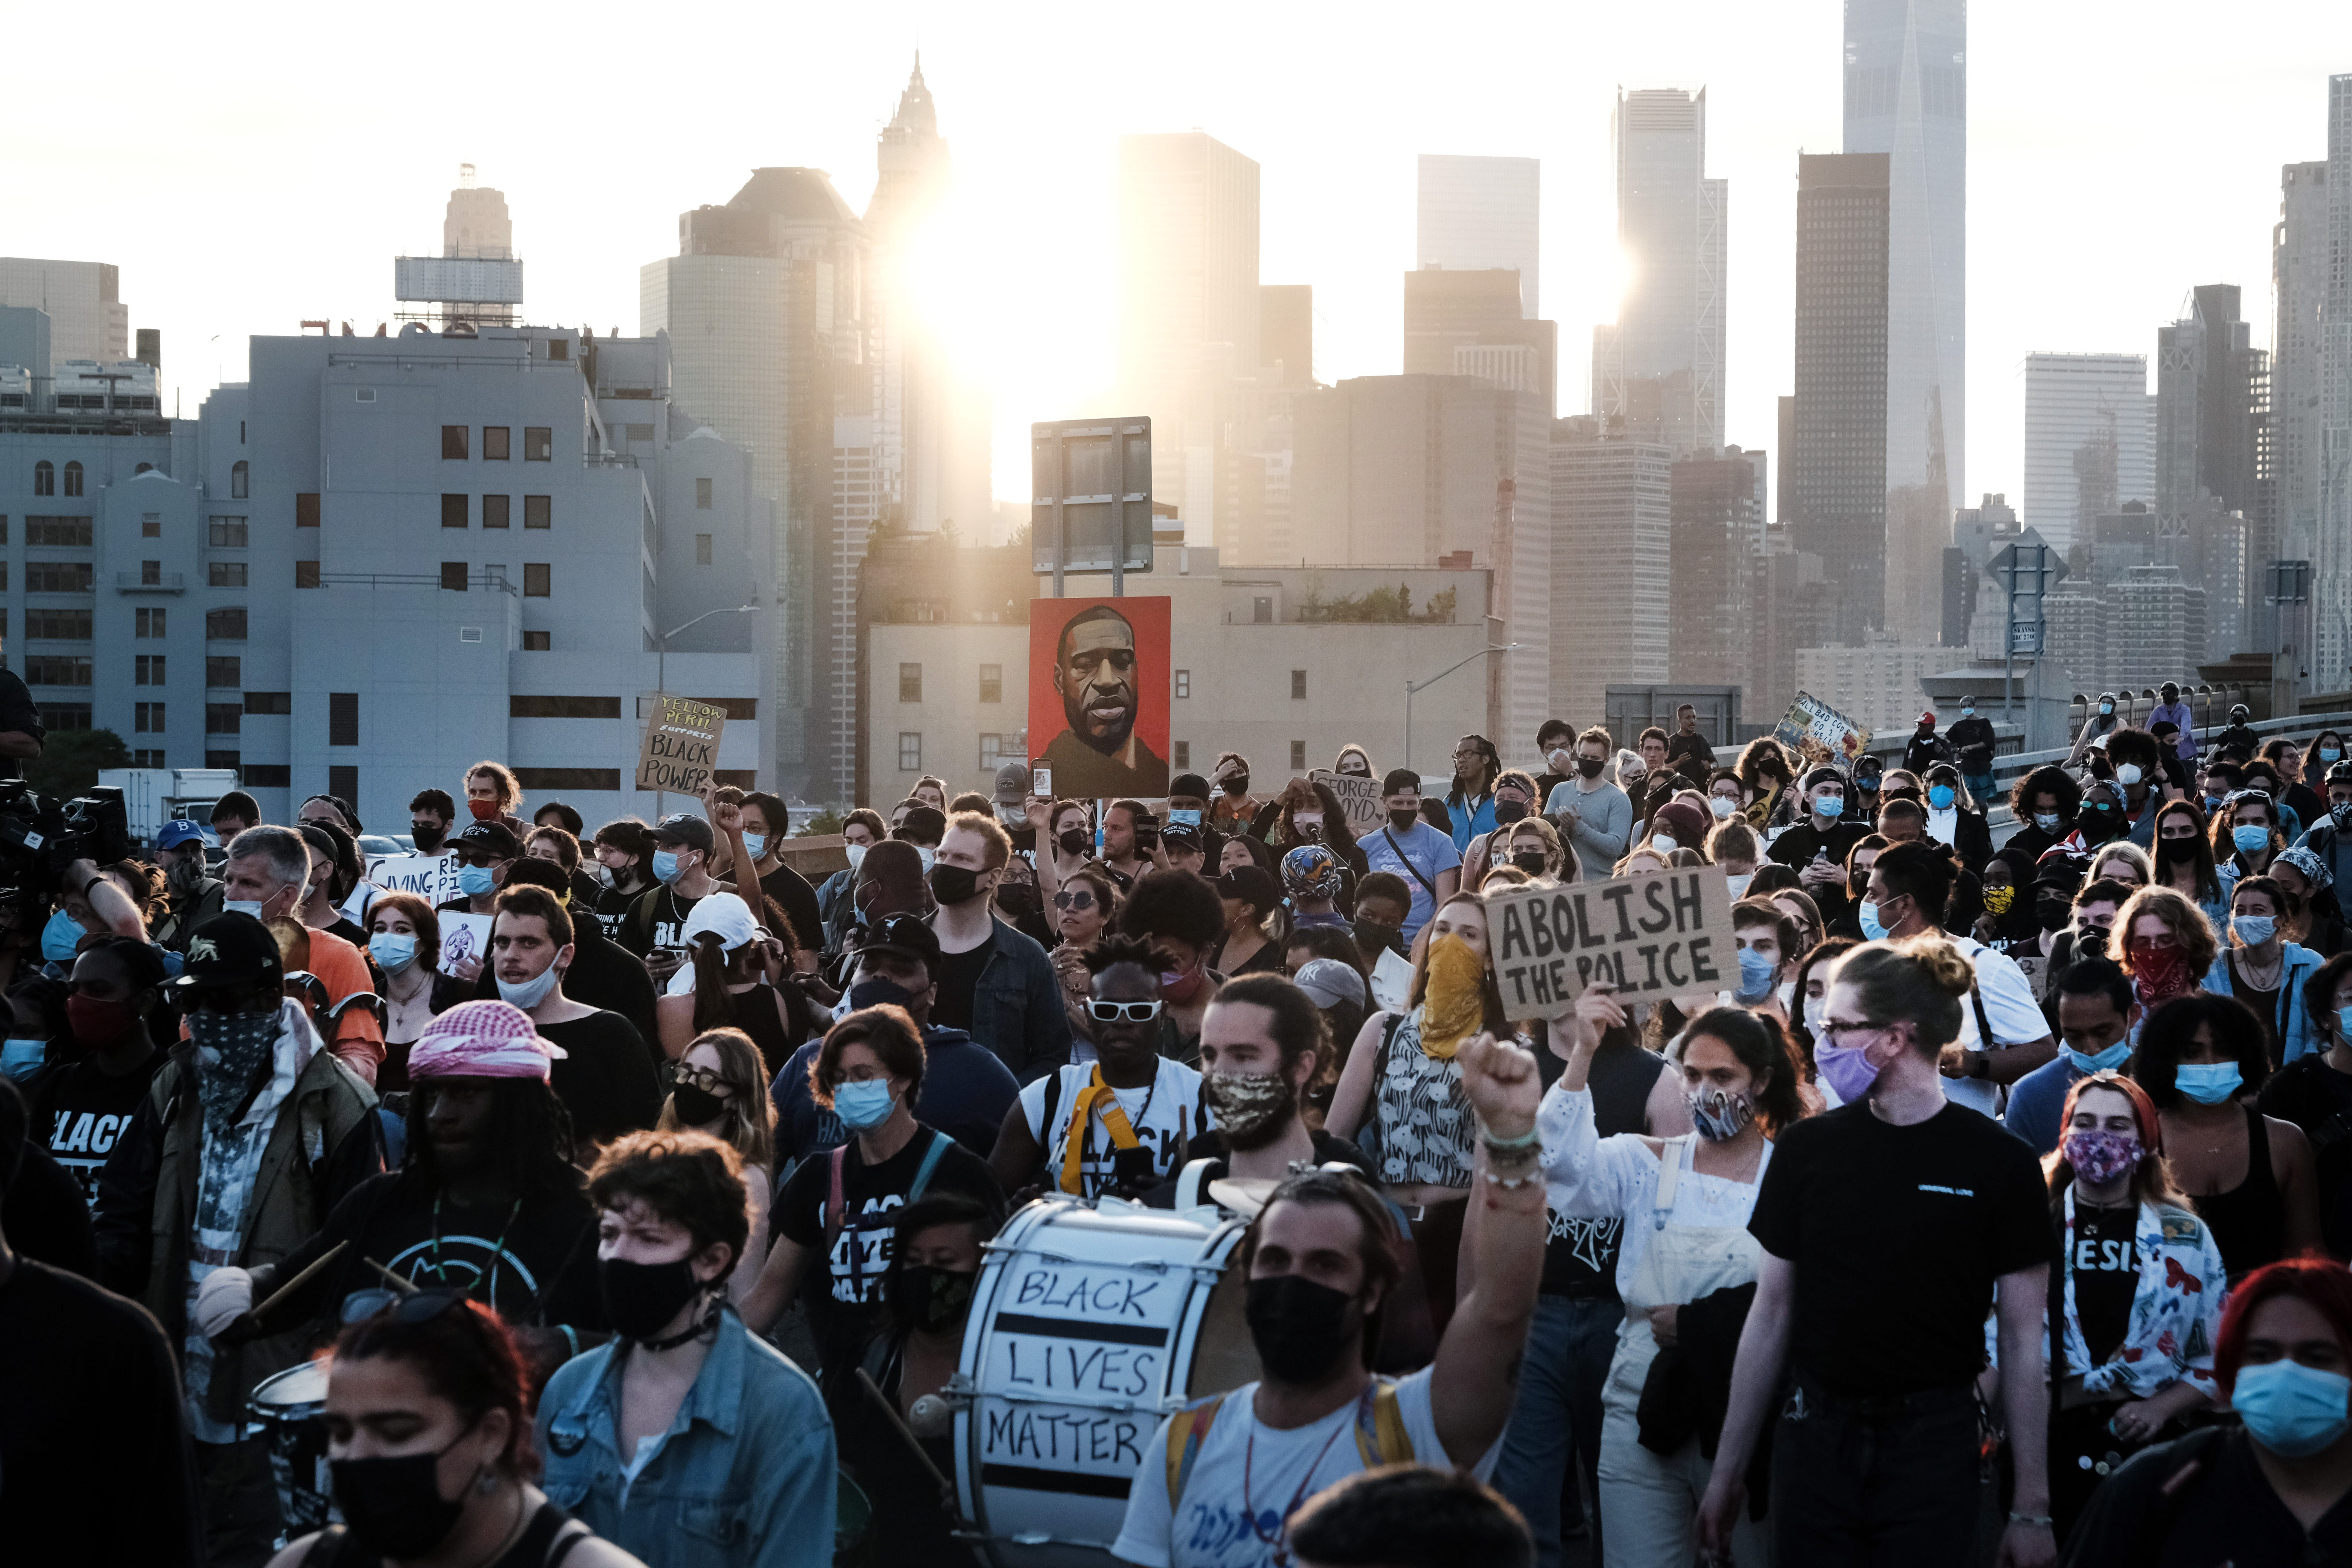 Black Lives Matter supporters and others march across the Brooklyn Bridge on May 25, 2021, in New York City to honor George Floyd on the first anniversary of his death.